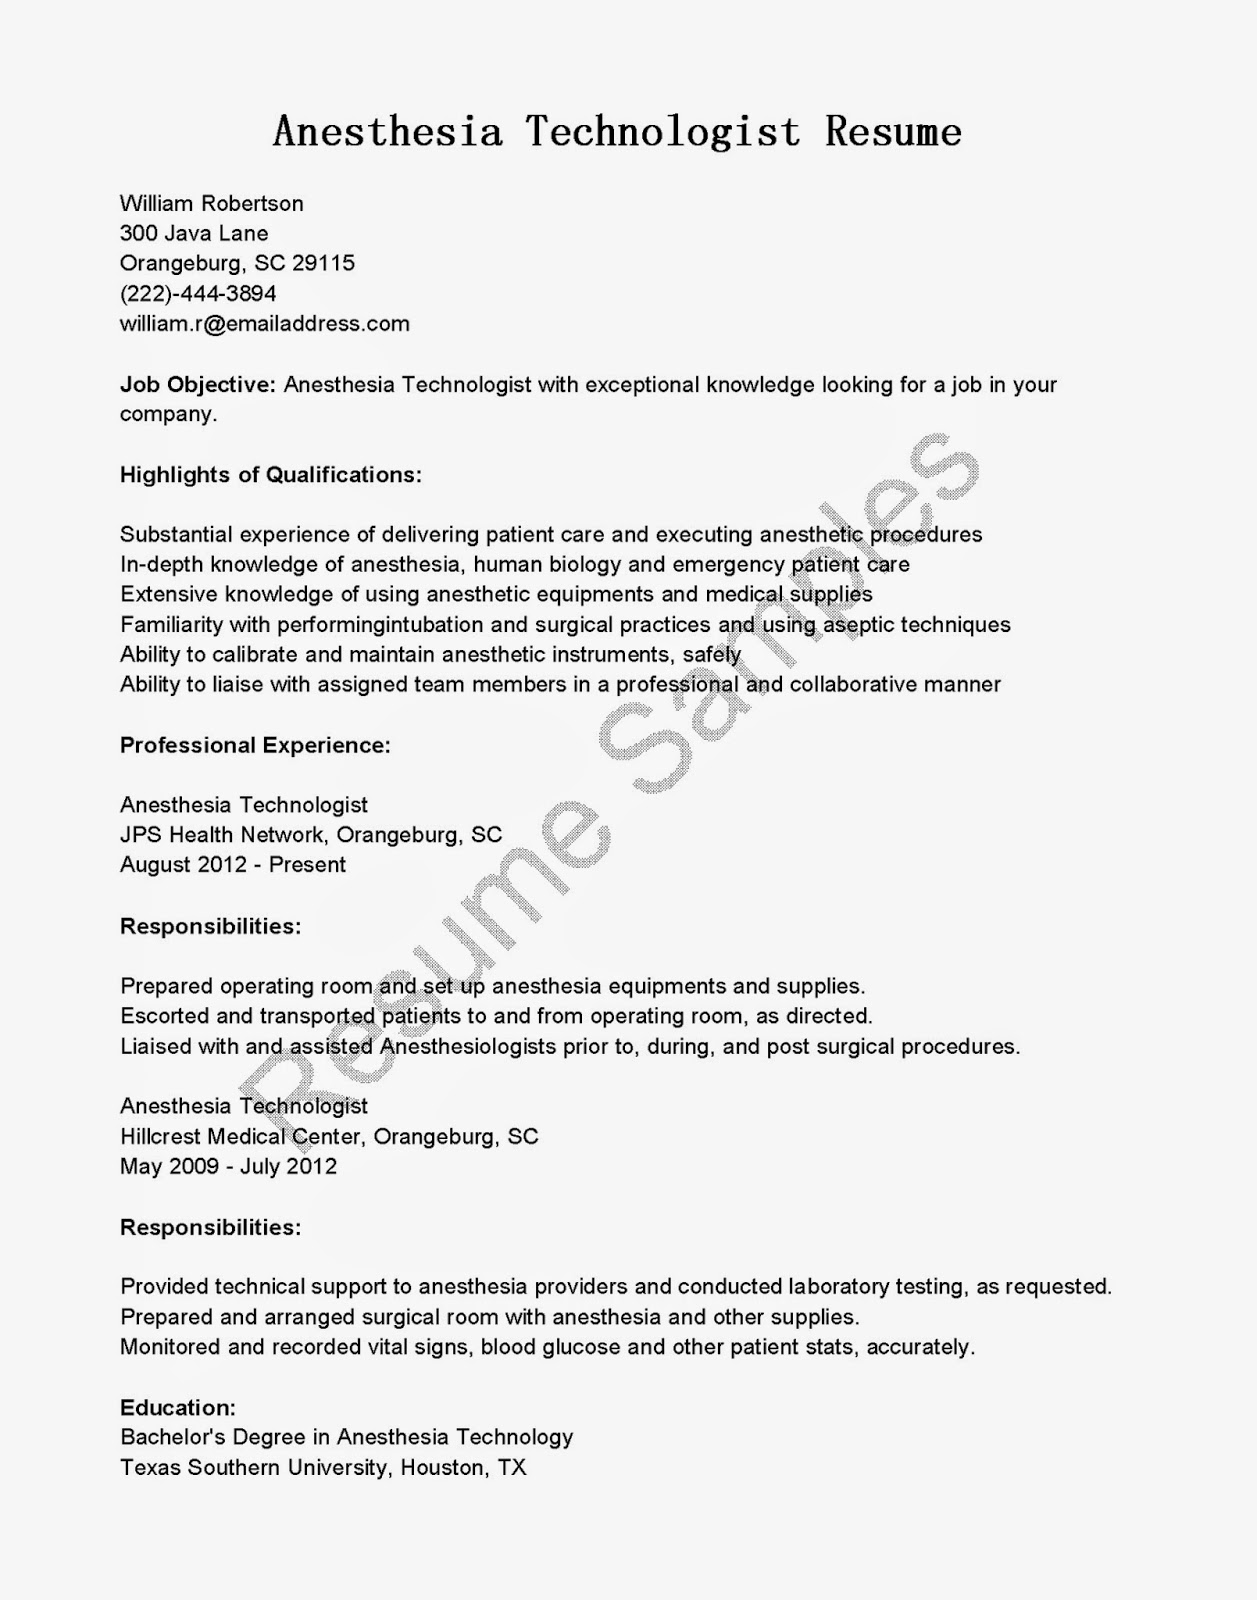 Resume Samples Anesthesia Technologist Resume Sample